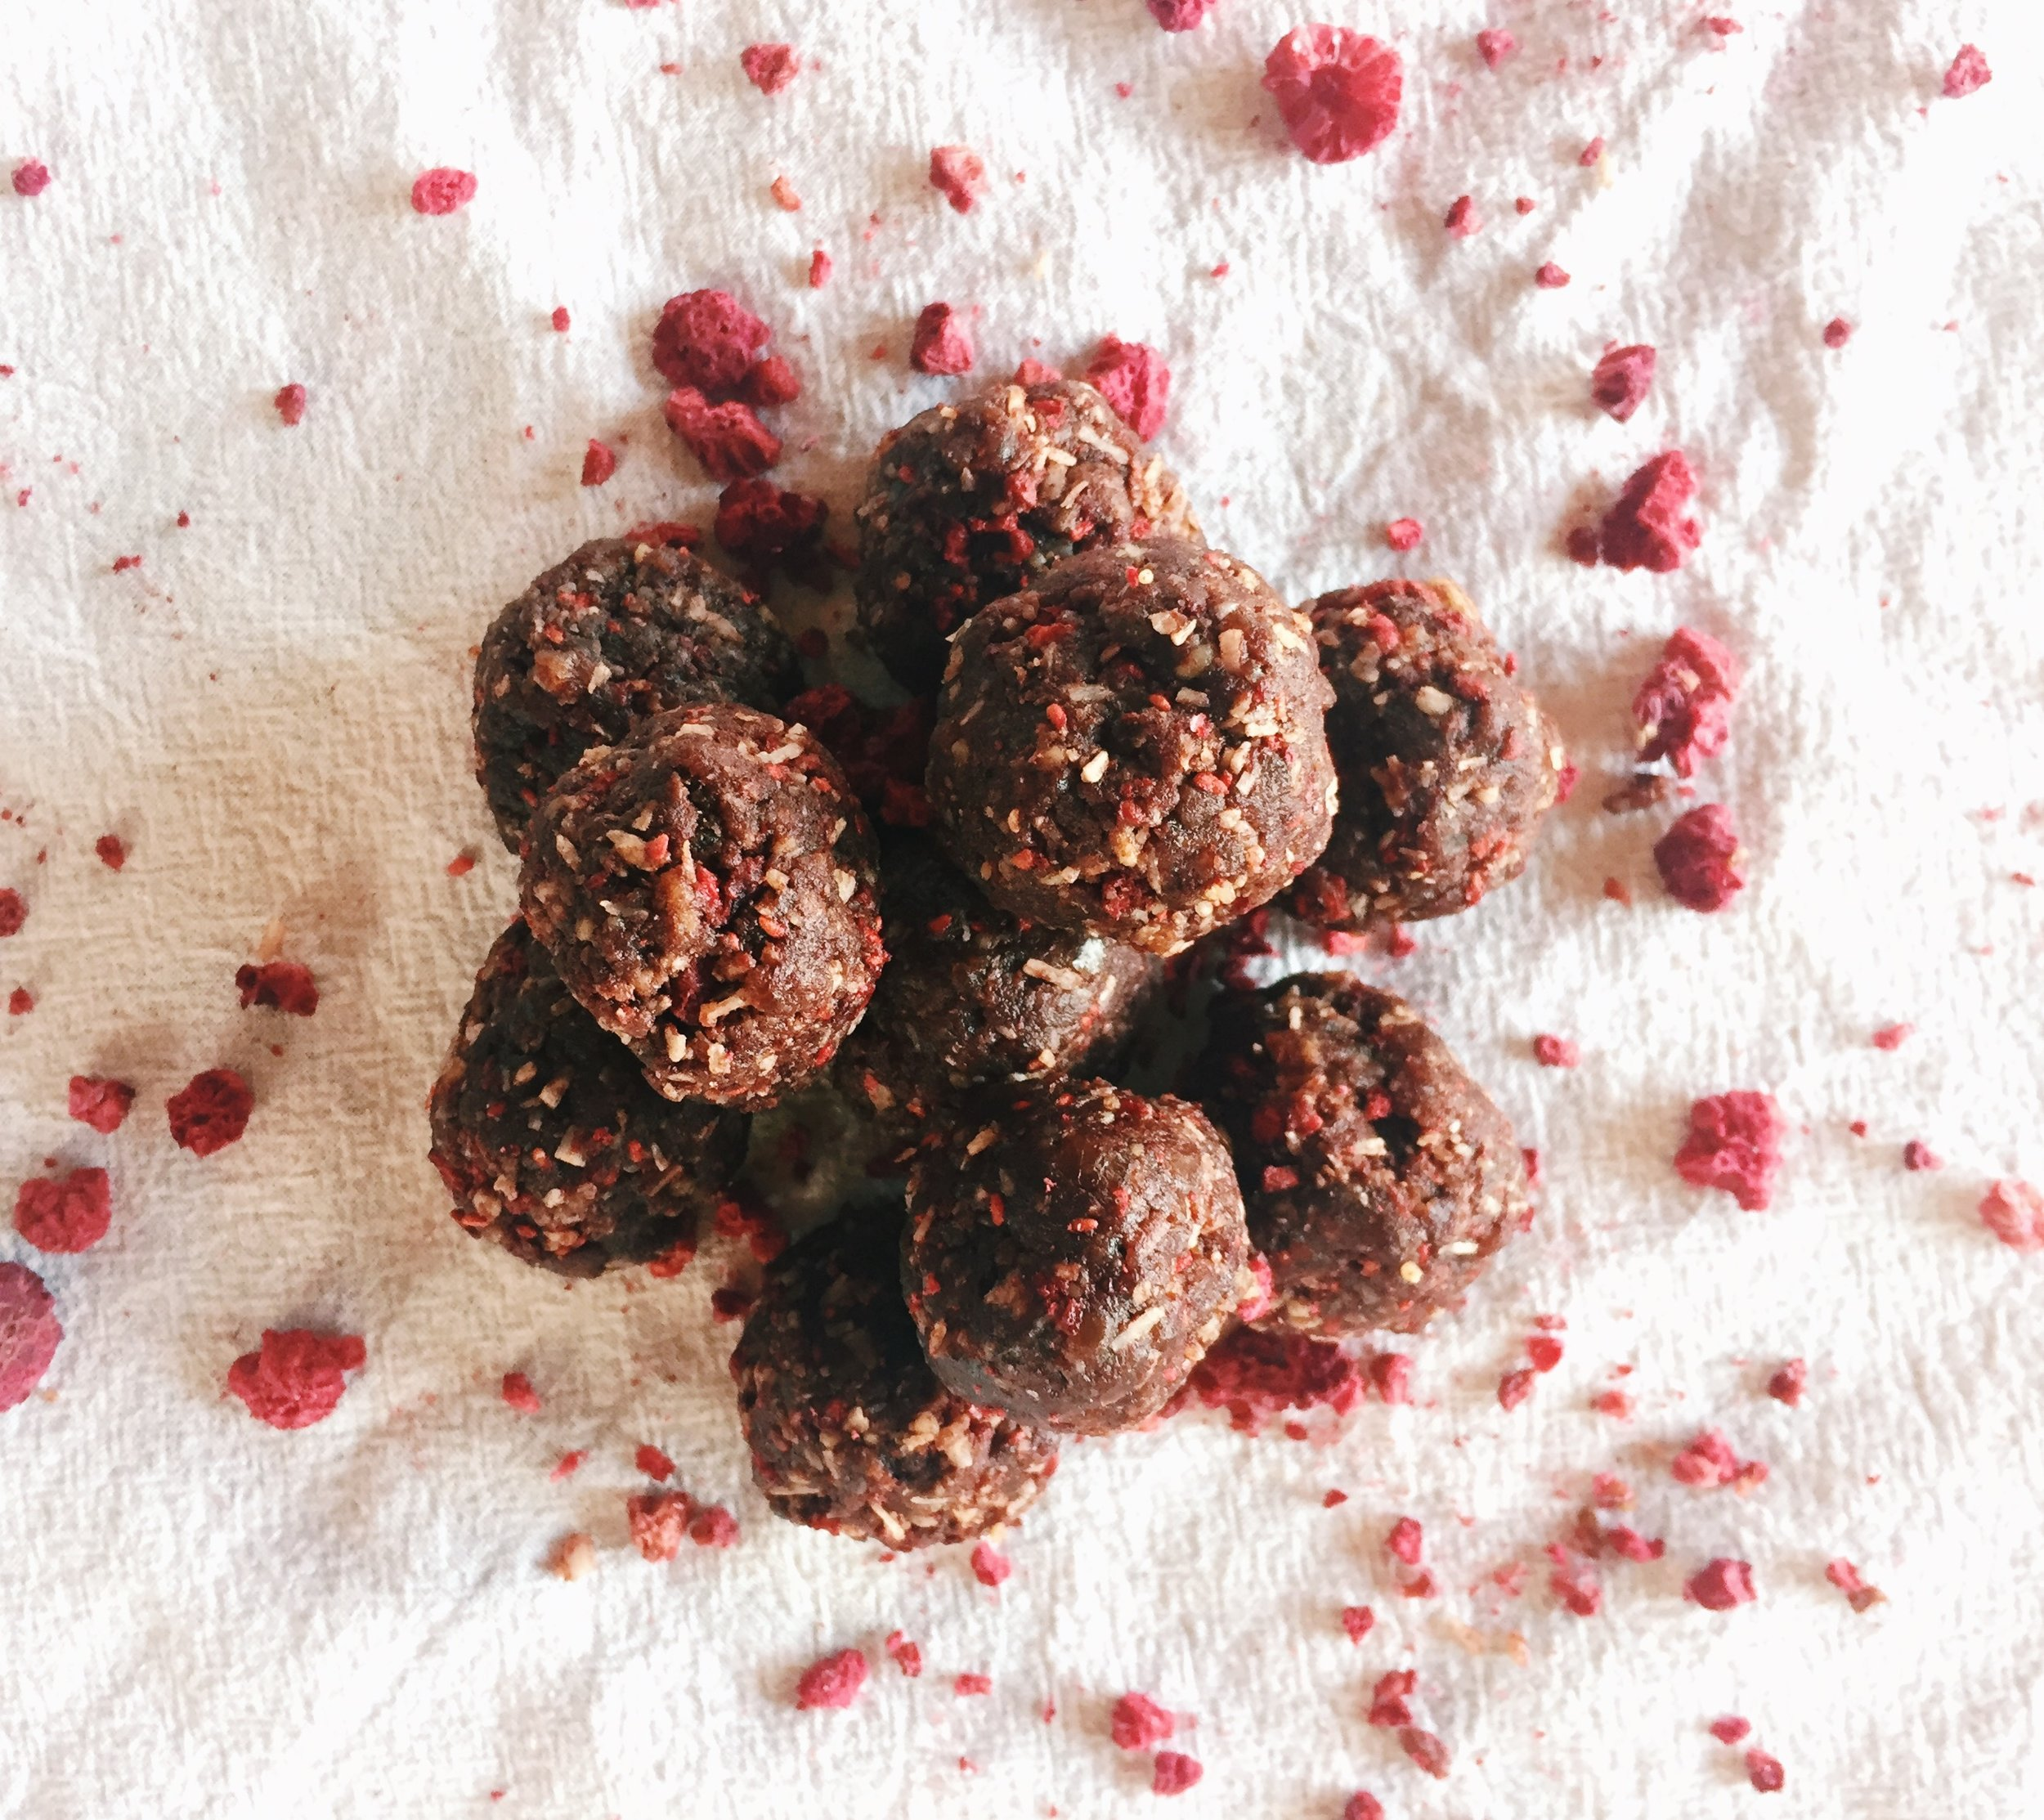 CHOCOLATE COVERED STRAWBERRY ENERGY BALLS